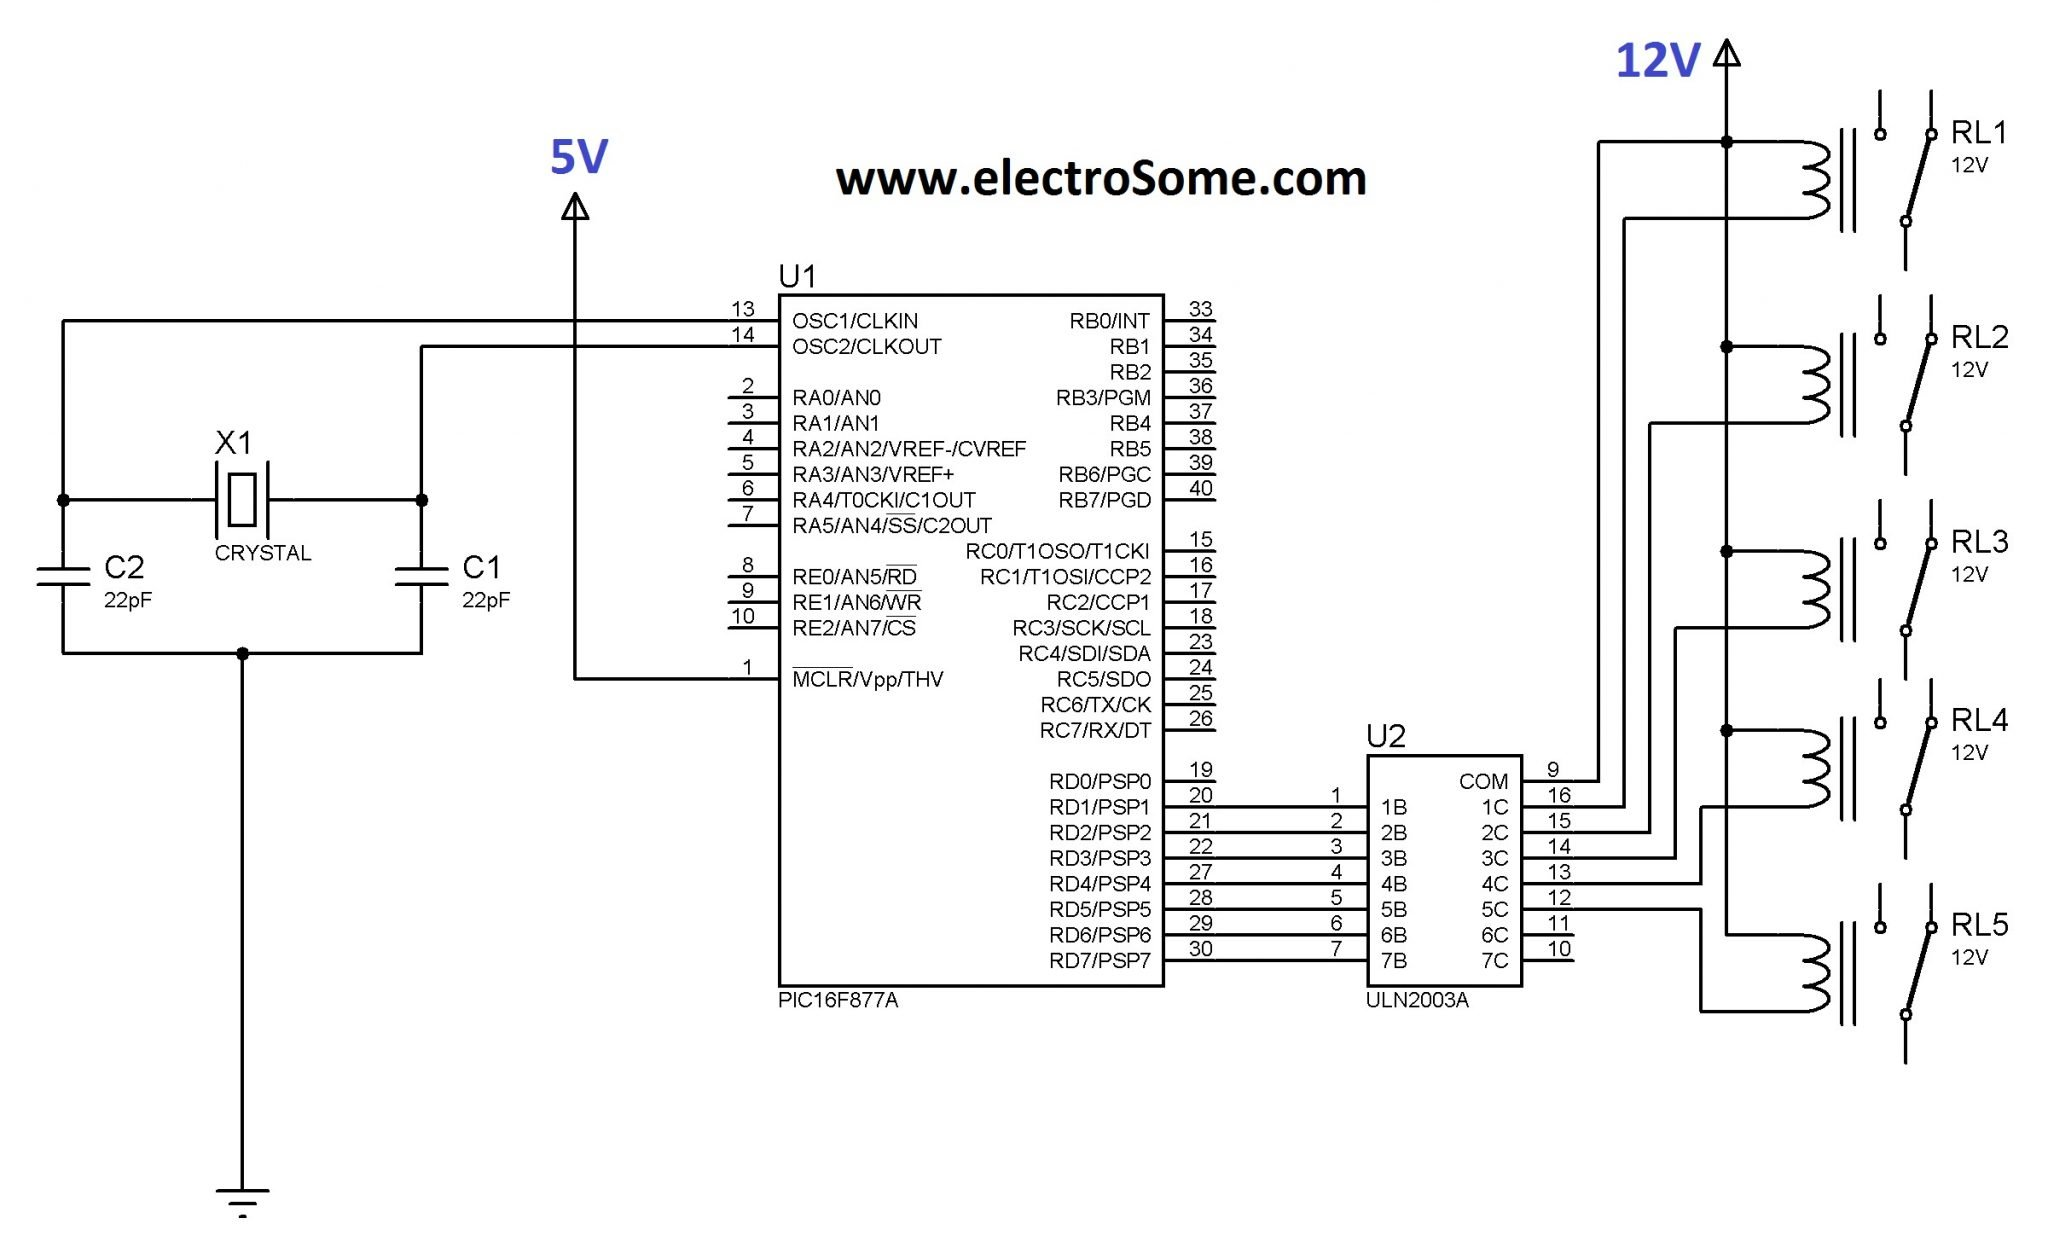 Dc 6v 30v 6a  m Motor Speed Controller Switch Module For Ccmfc2 Fan furthermore Stepper motors likewise 12v Solid State Relay additionally Dc Motor Schematic Diagram as well A DC Motor  M Speed Control Circuit L60382. on pi dc motor control